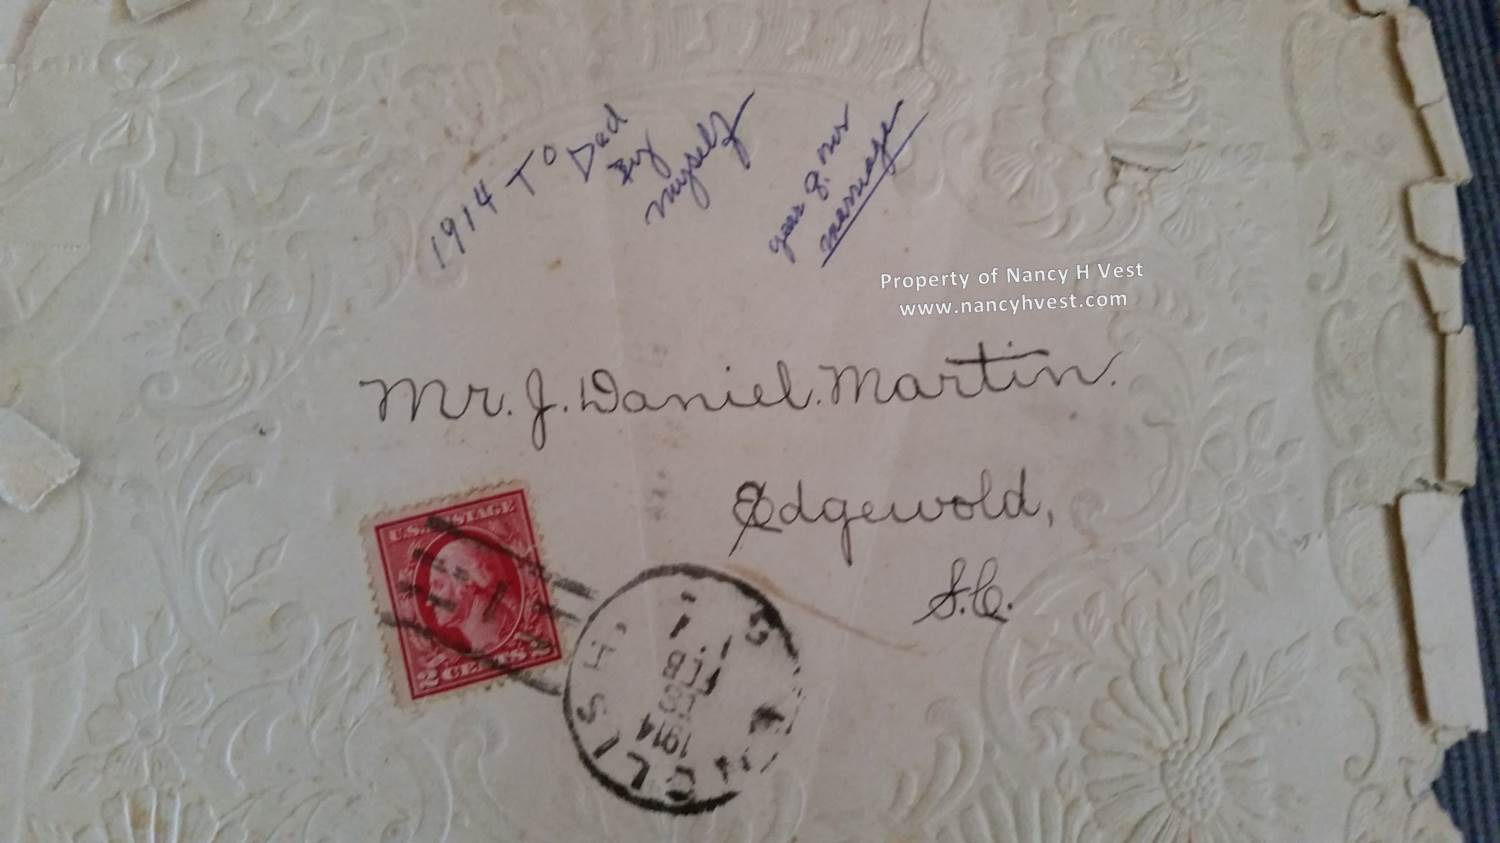 An embossed and ragged envelope which shows where my grandmother addressed it, and a notation in her hand about it being from the year they married.